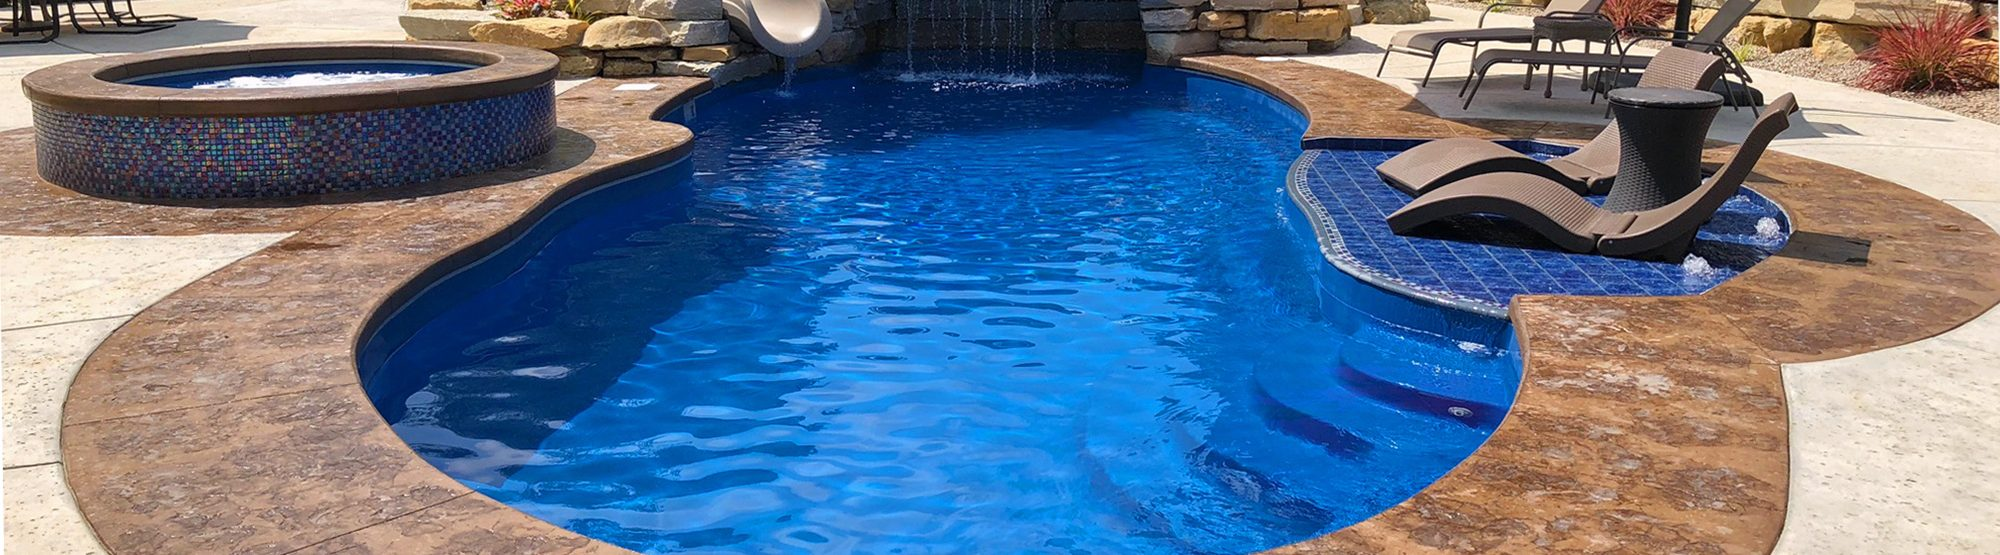 The Most Popular Inground Fiberglass Pools On The Market